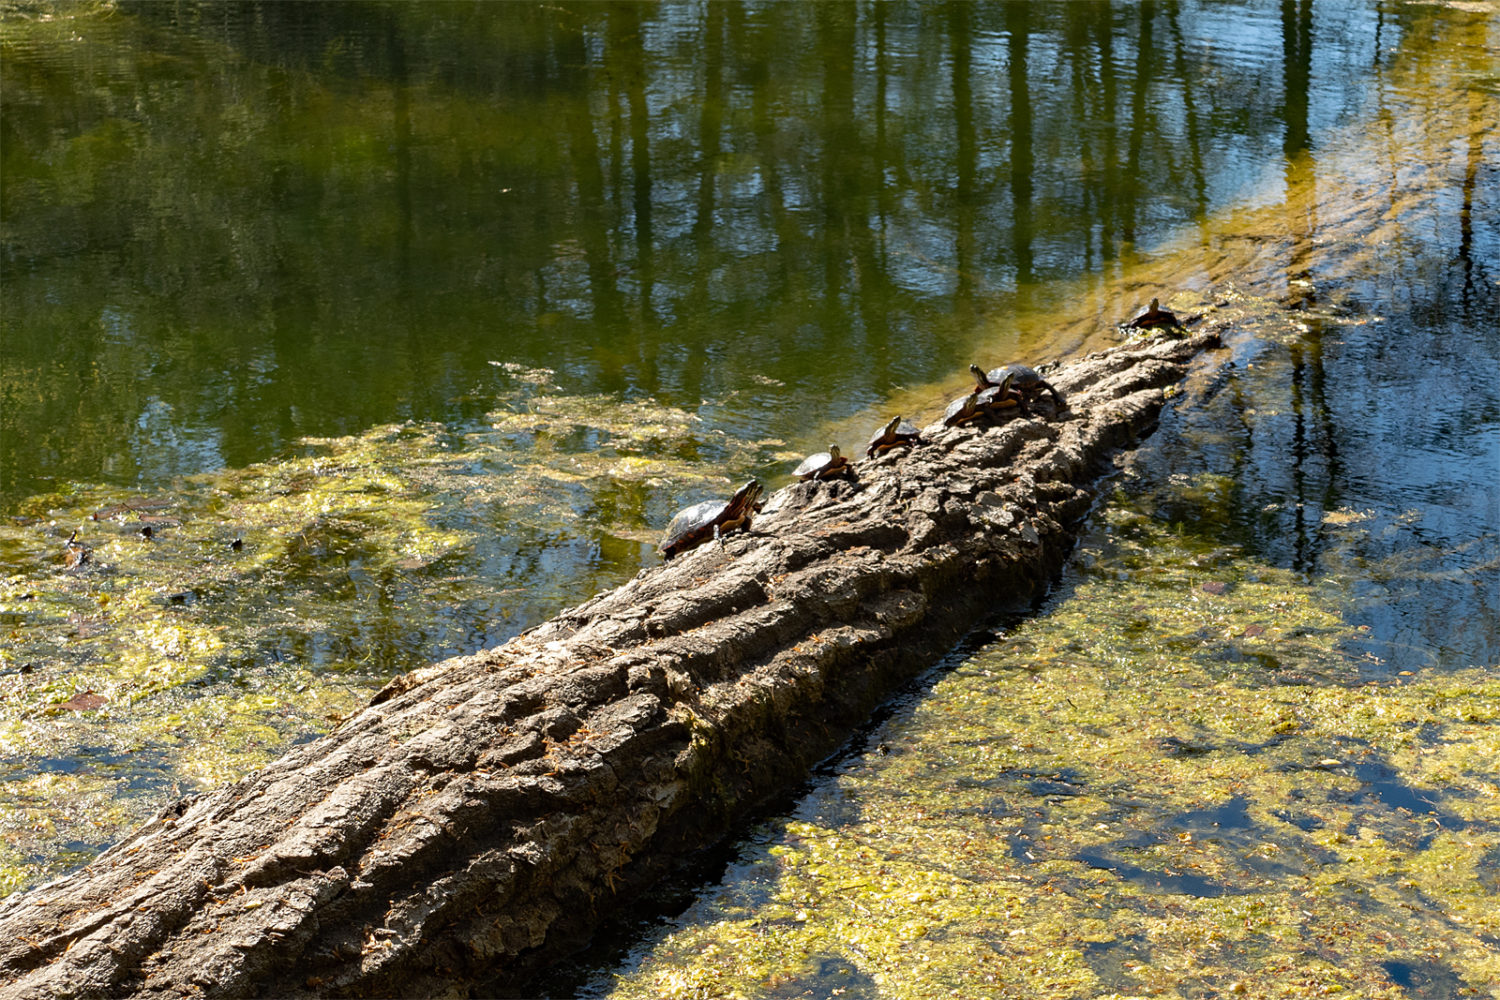 Turtles sunning themselves on a  fallen tree in Durand Lake